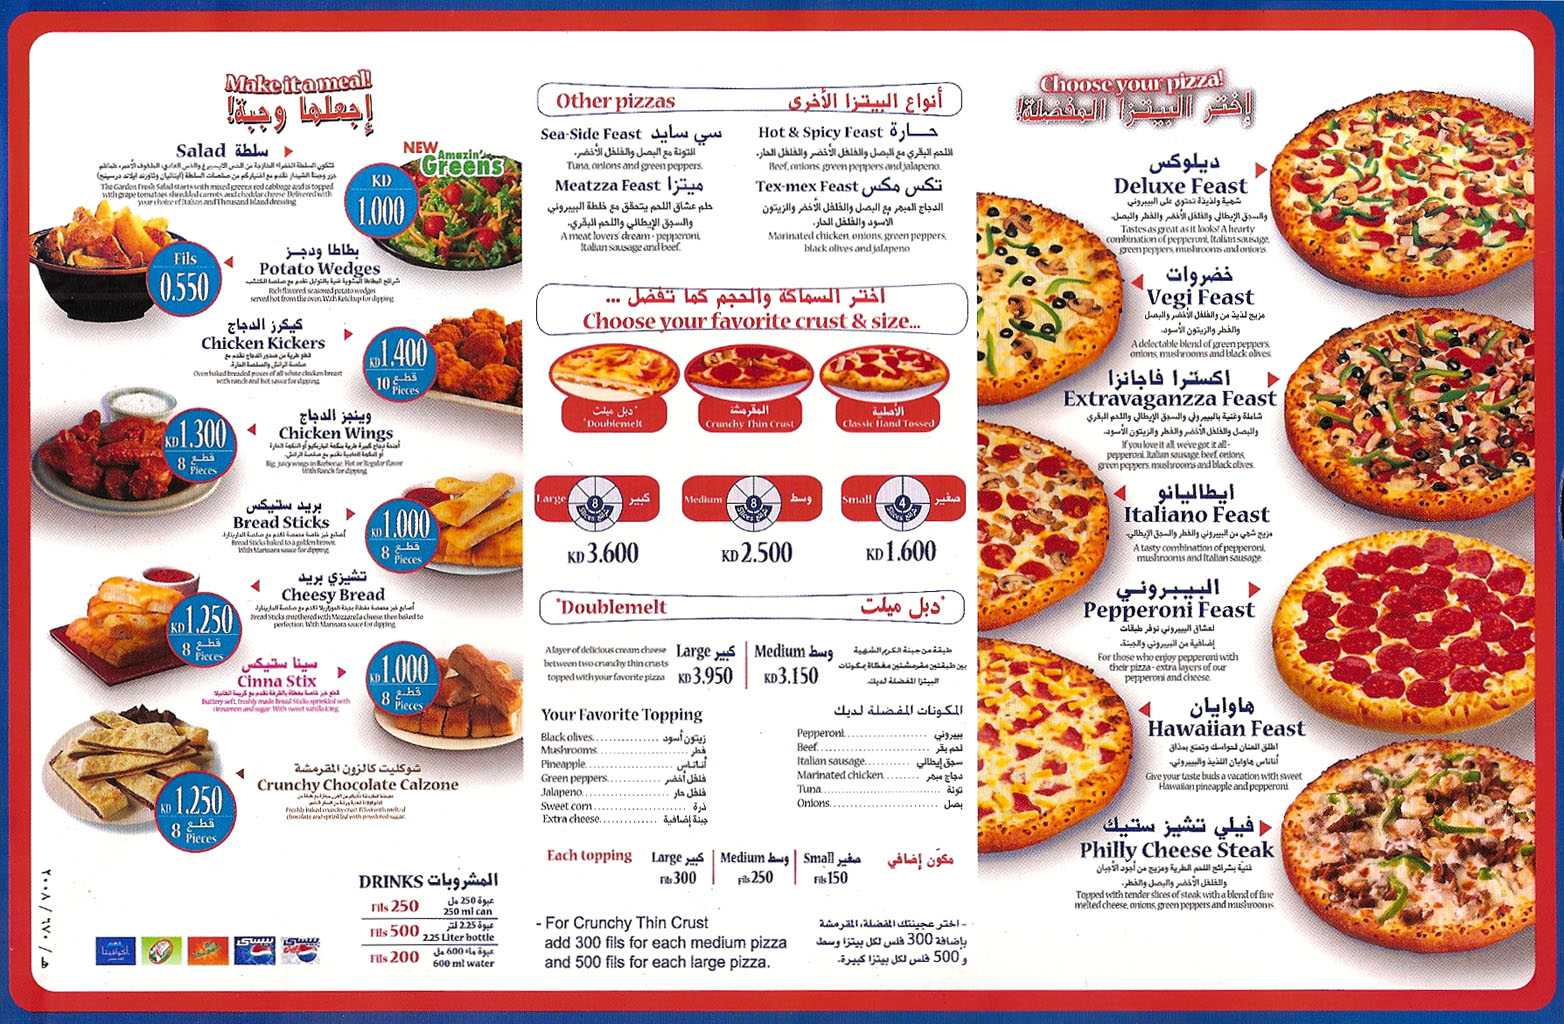 6 best images of domino 39 s printable menu domino 39 s pizza for Domino pizza